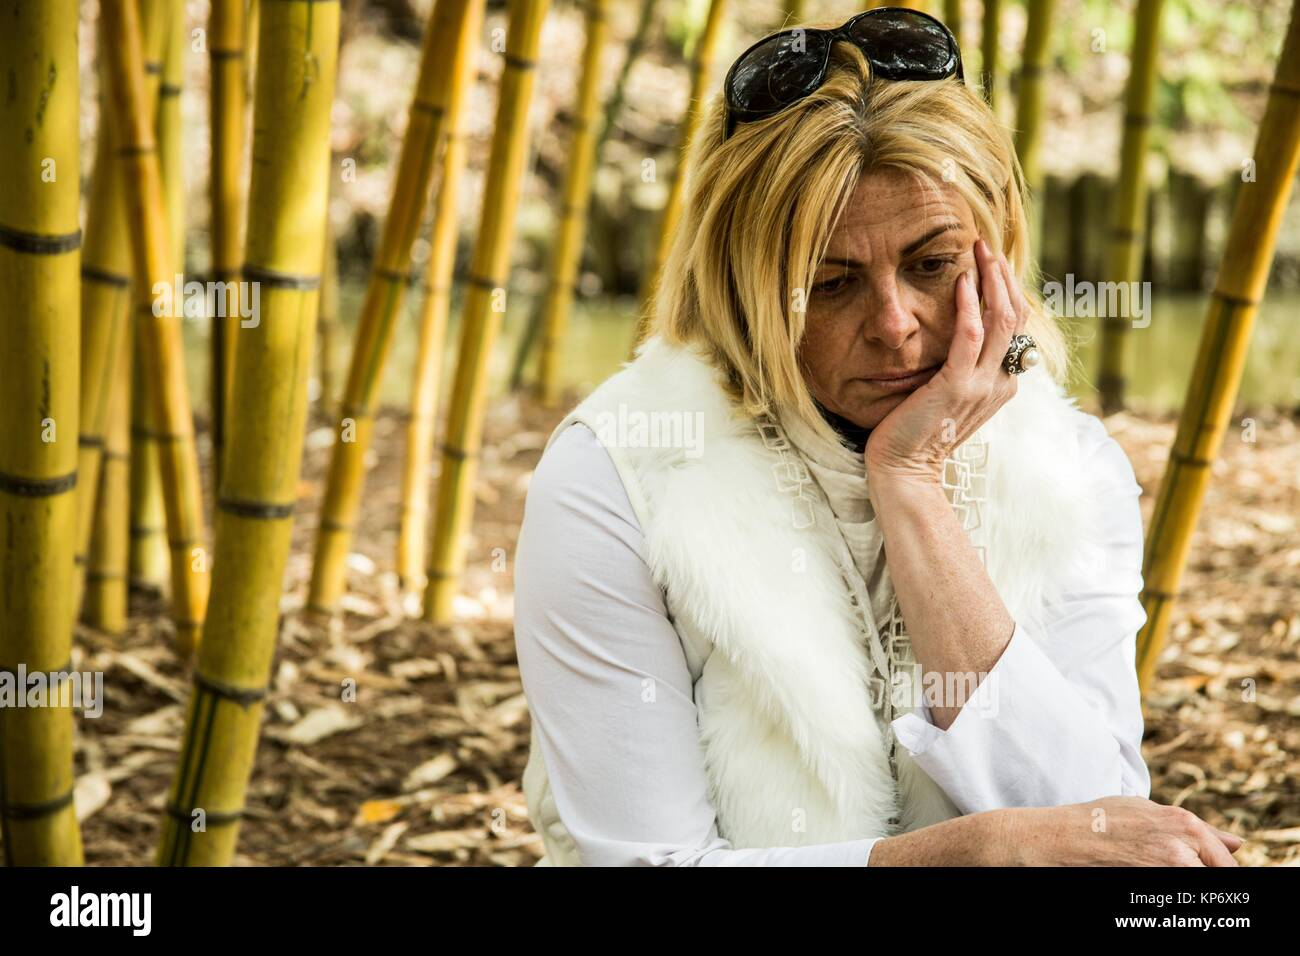 Melancholic blond woman sitting in the middle of bamboos. She is dressed in white, has sunglasses on and looks sad, - Stock Image